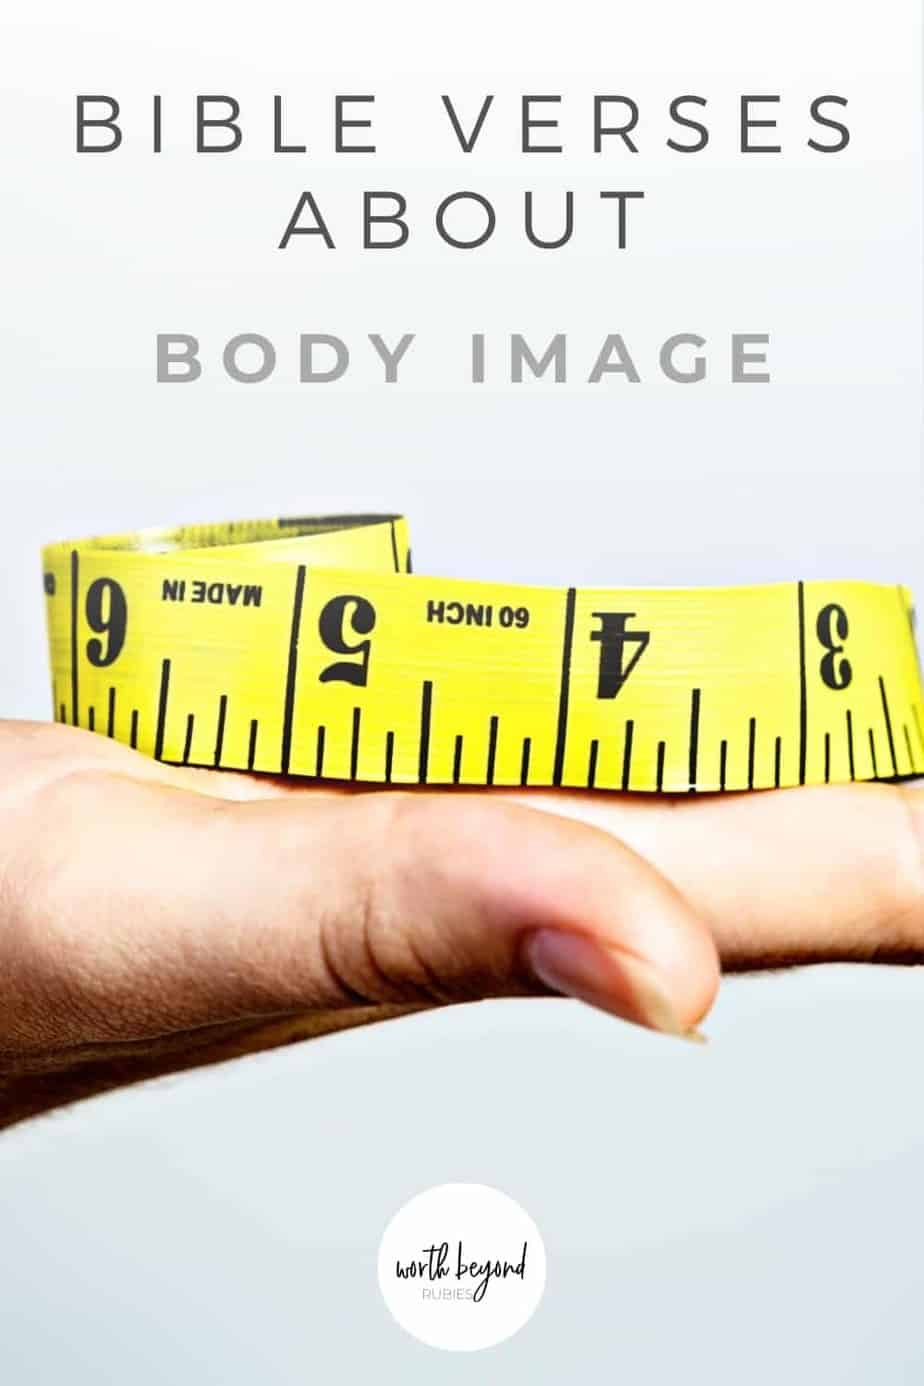 An image of a hand held flat with a yellow measuring tape on it and text that says Bible Verses About Bible Image